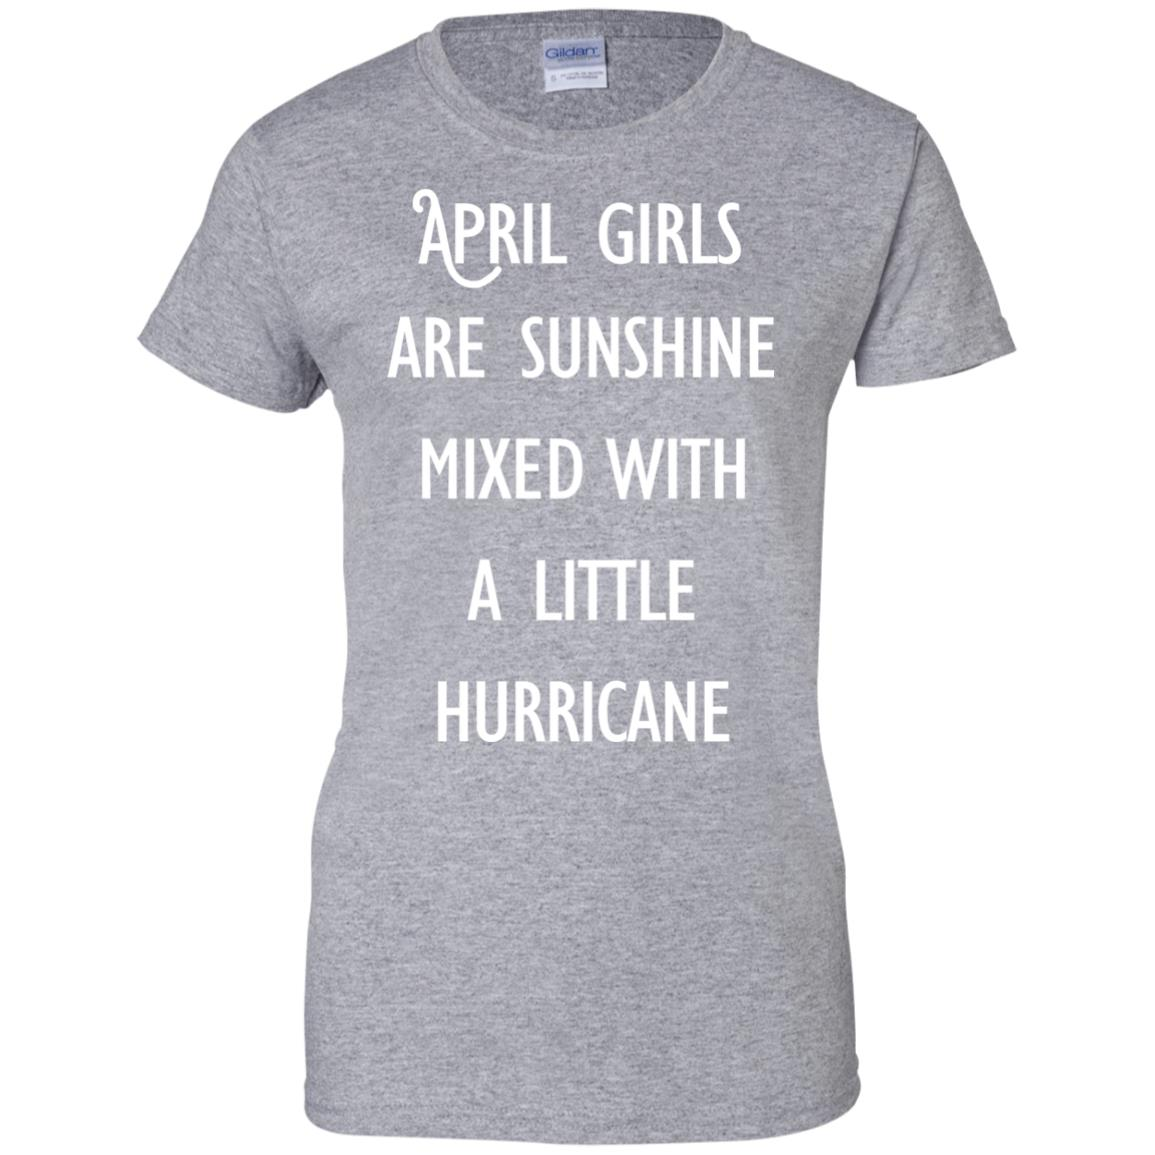 image 204 - April Girls Are Sunshine Mixed With A Little Hurricane T-shirt